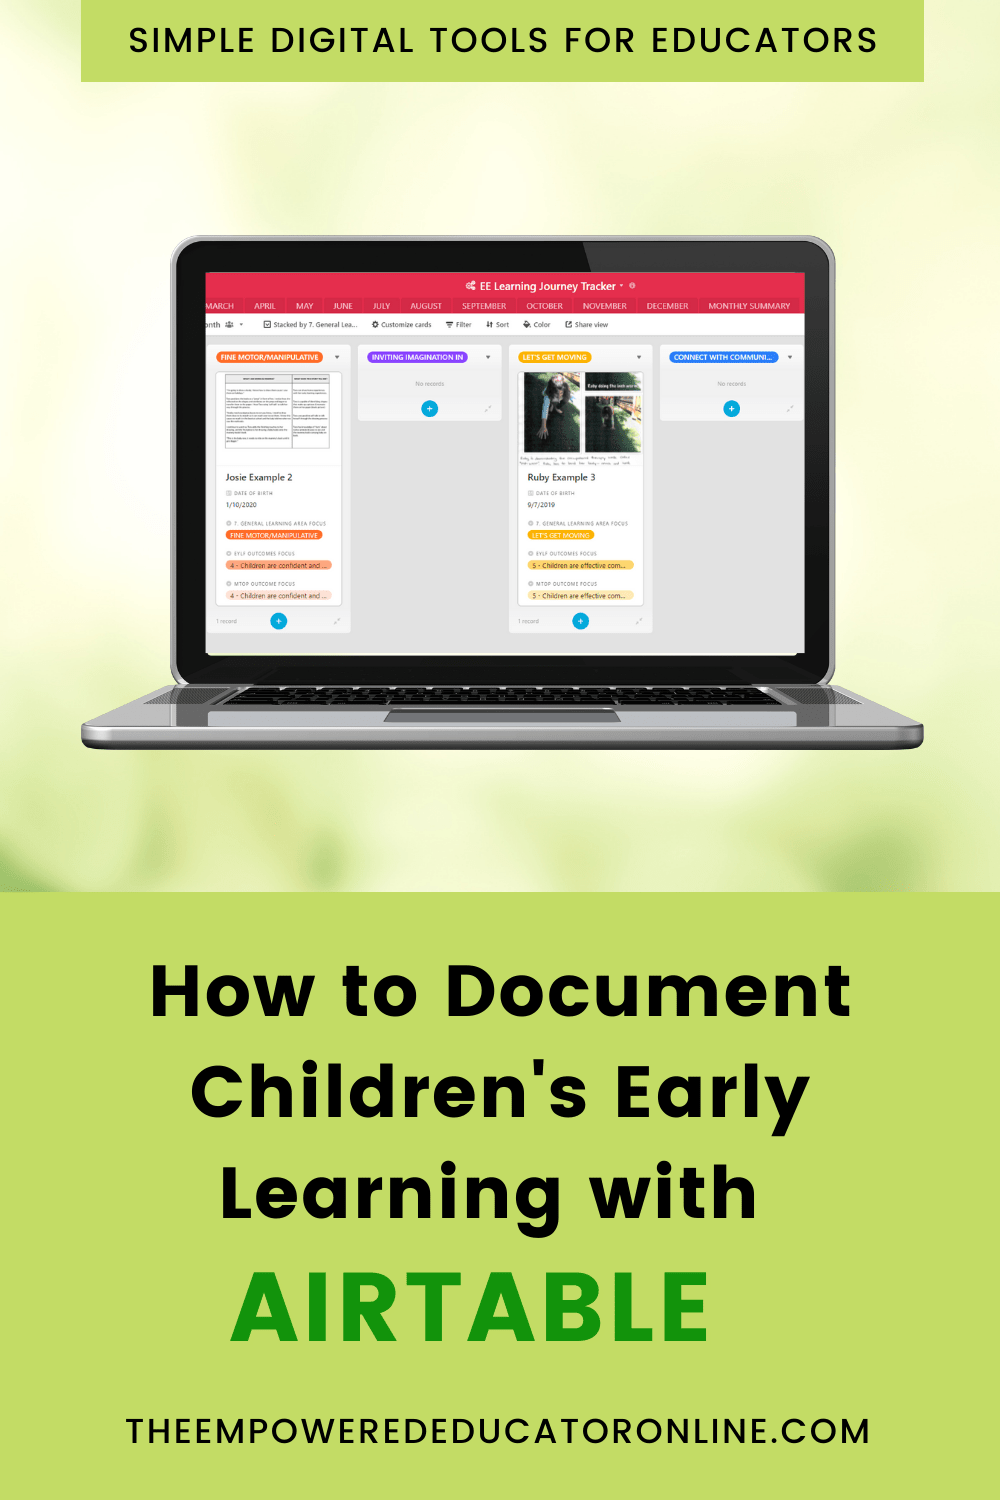 Document Children's Early Learning with Airtable1